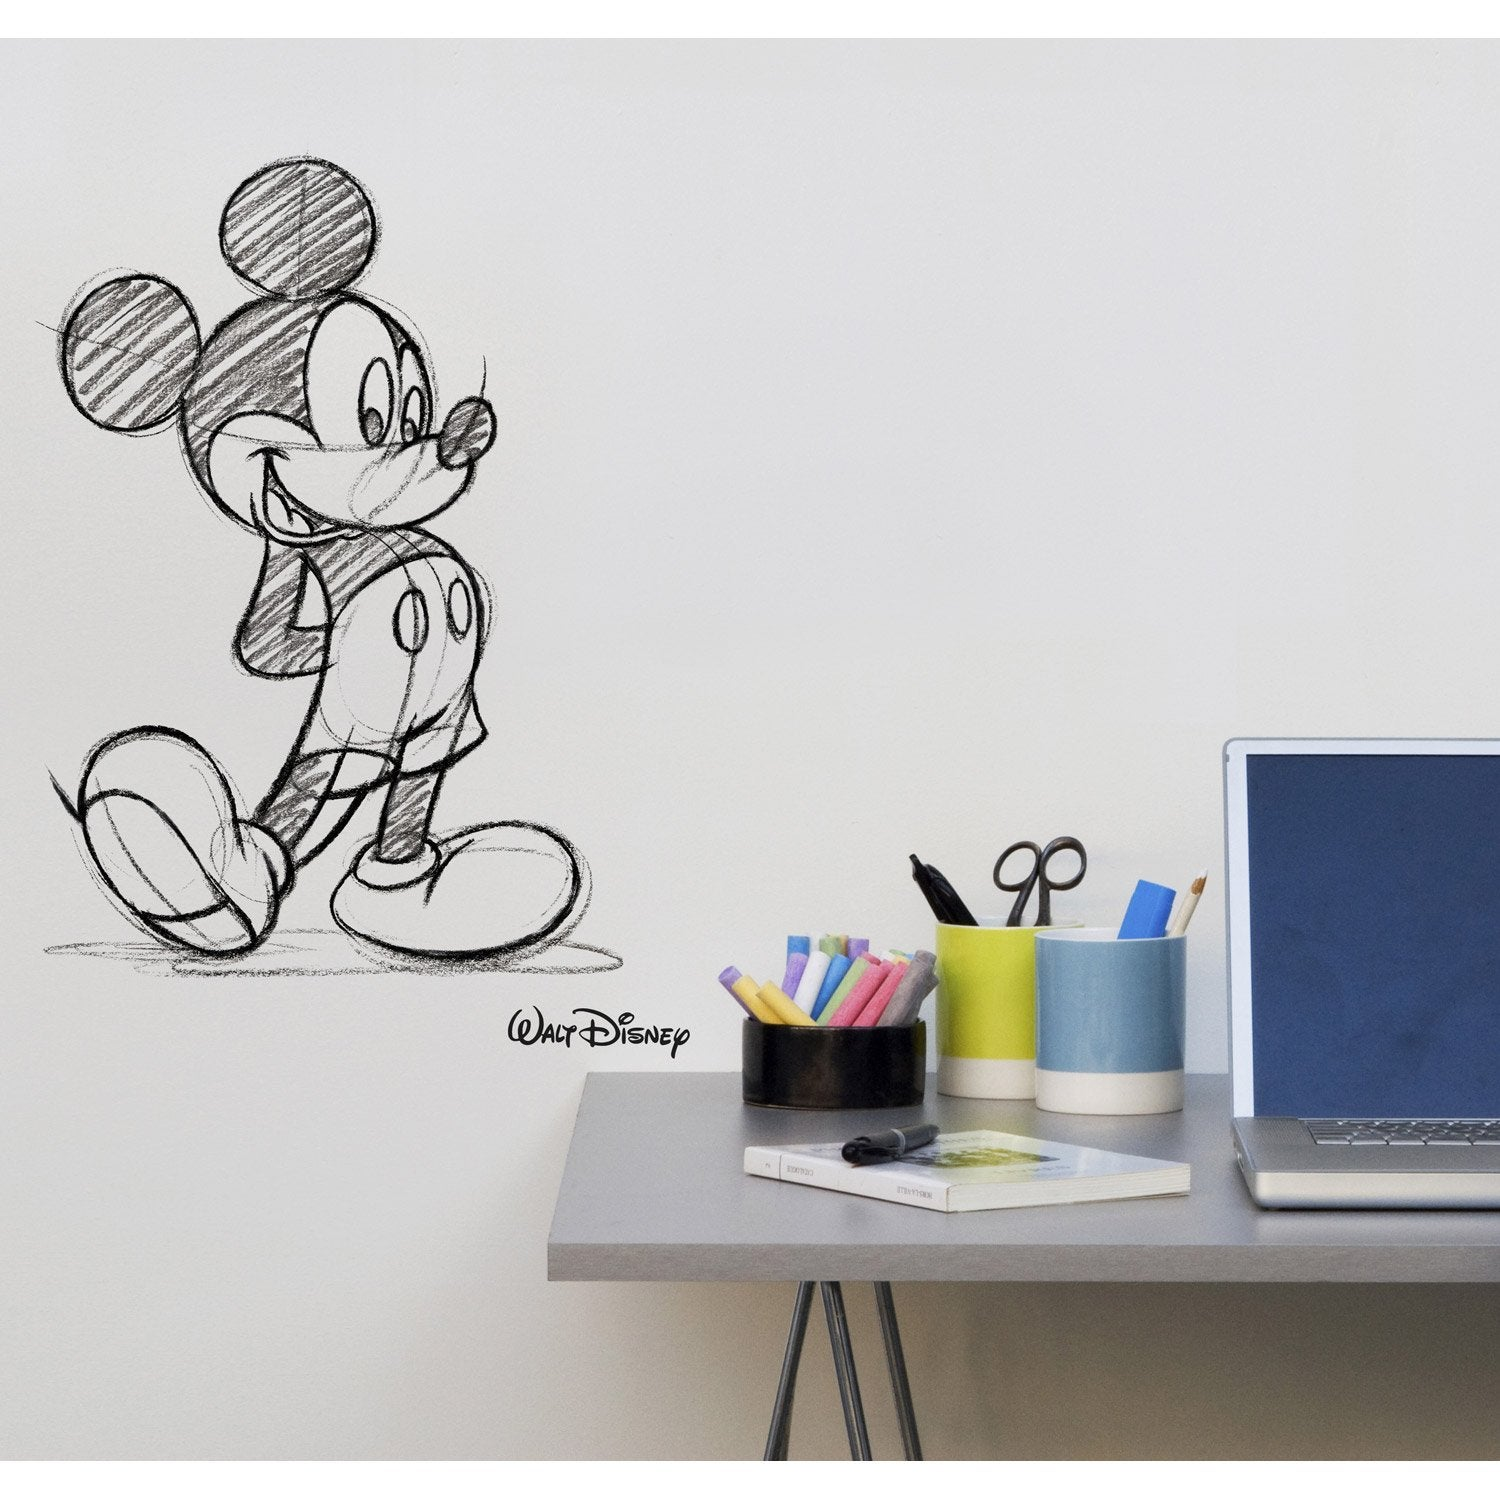 Sticker mickey transfert 49 cm x 69 cm leroy merlin - Leroy merlin stickers muraux ...